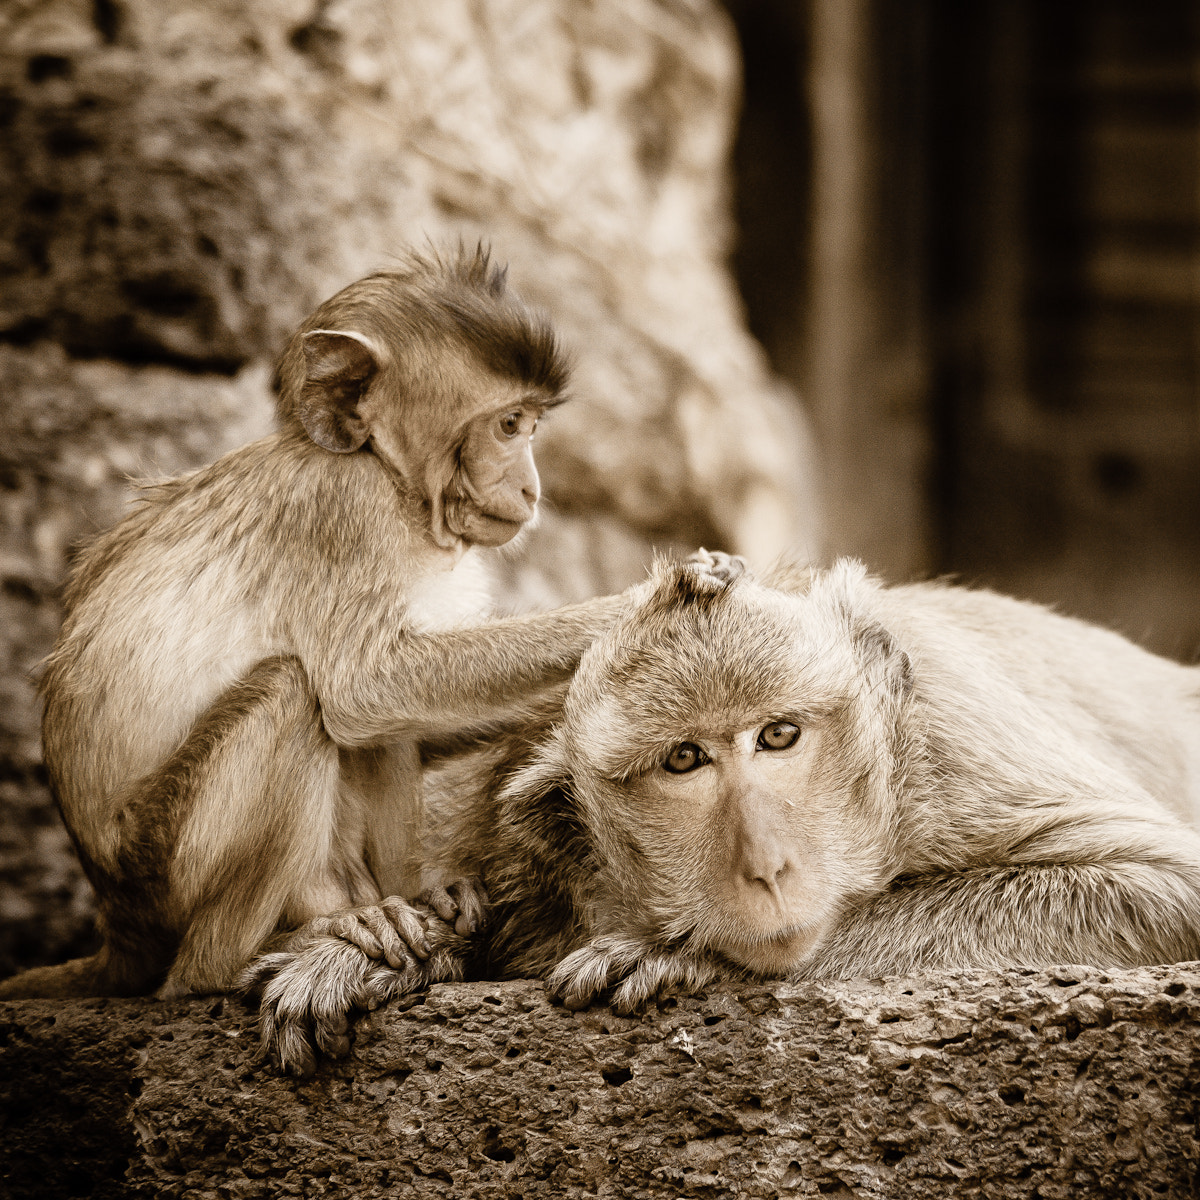 Photograph Grooming by Ramesh Indhewat on 500px